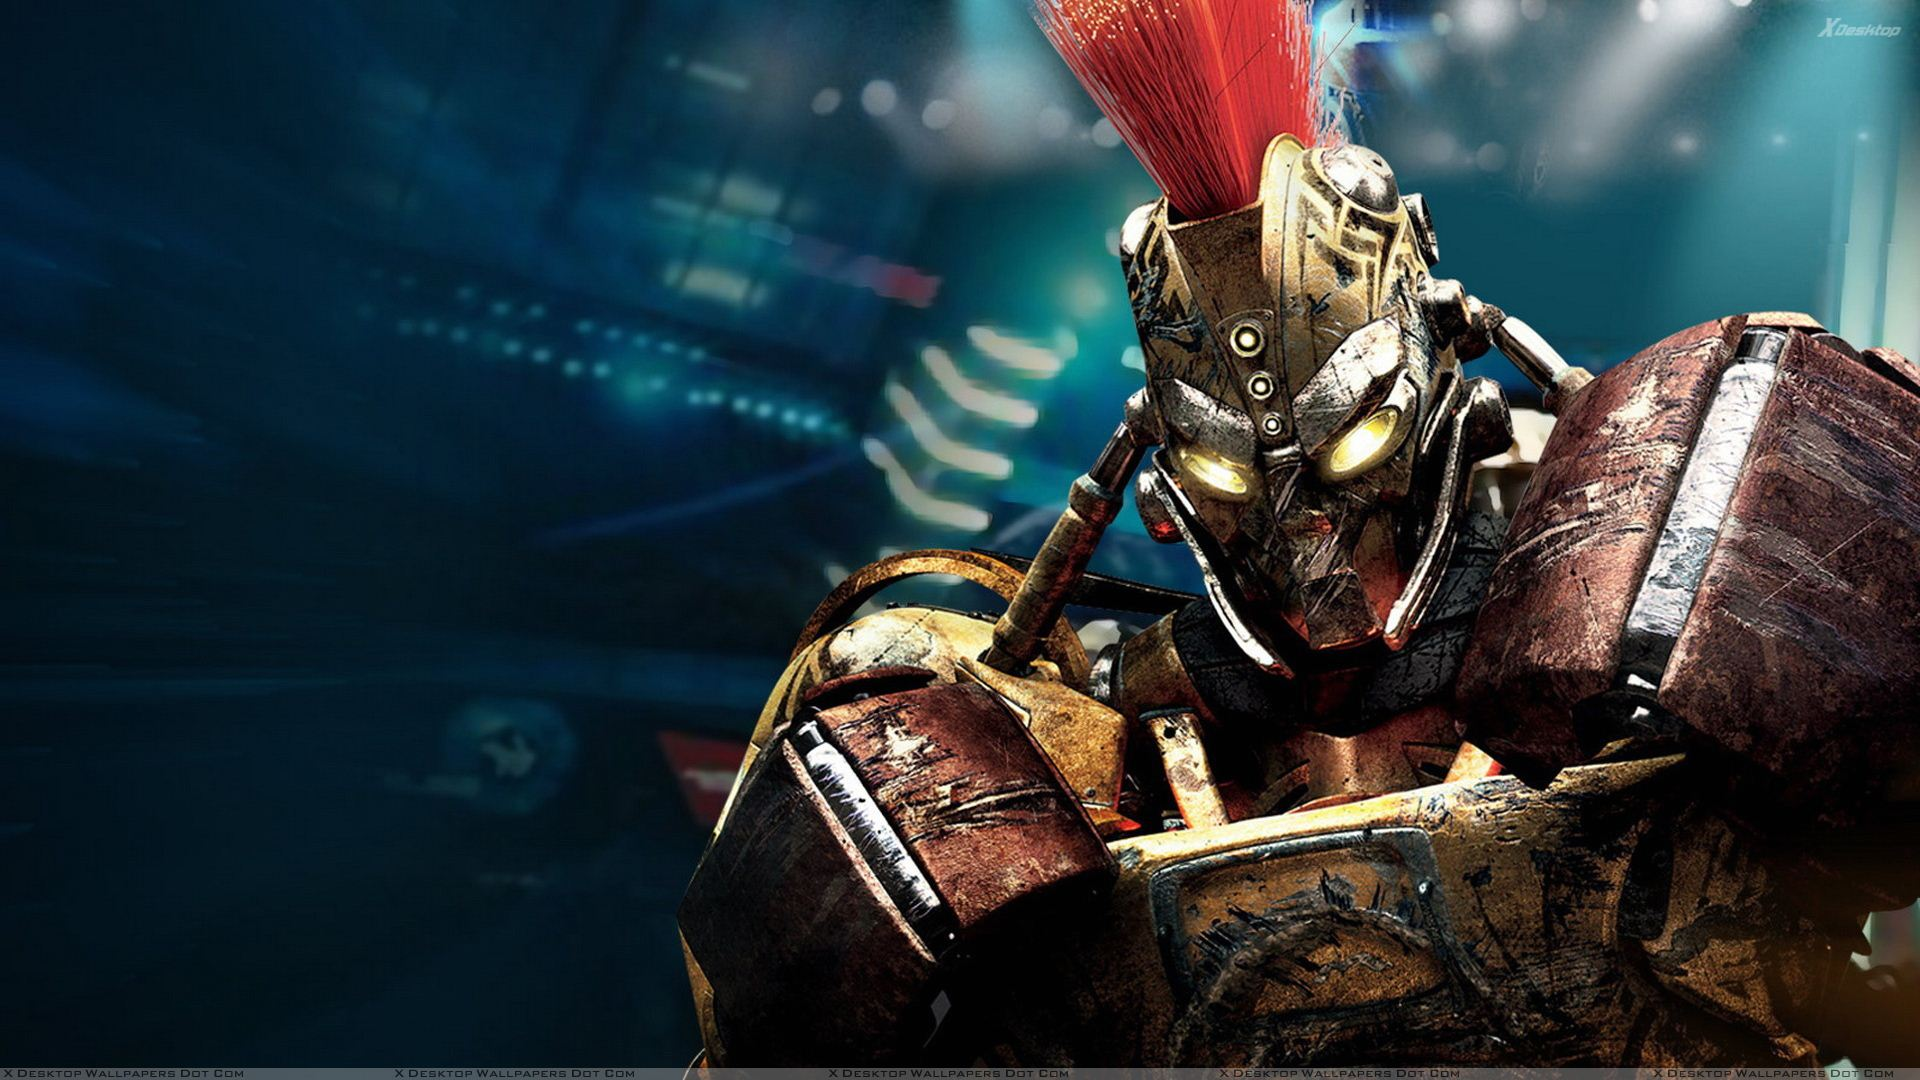 Real Steel Wallpapers Photos Images in HD 1920x1080